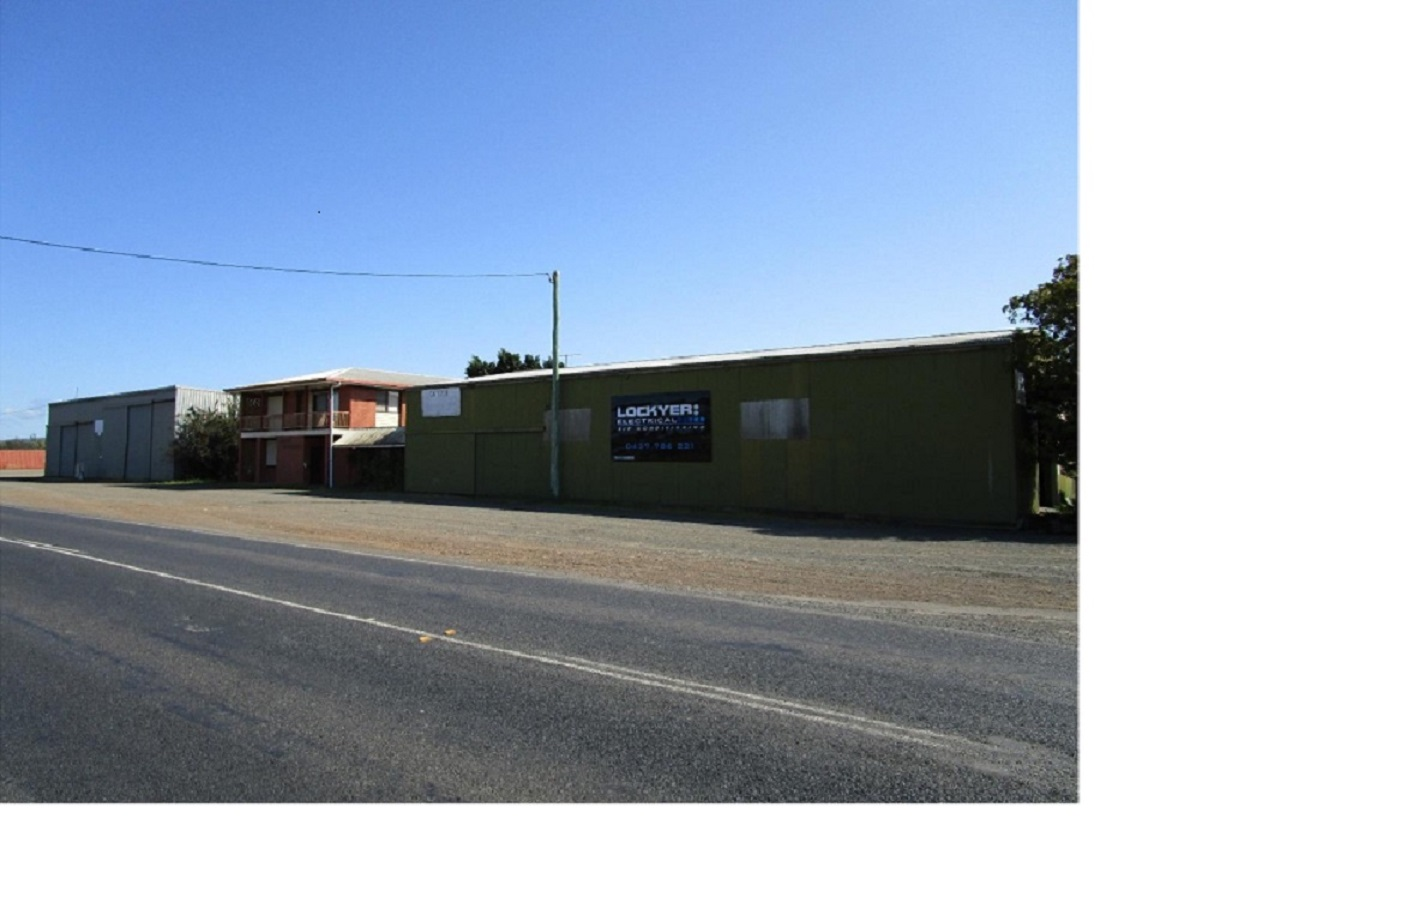 2 X LARGE POWERED SHEDS + 3 BEDROOM HOUSE ON 1.27 Ha. SUITABLE FOR TRUCK DEPOT, COMMERCIAL REPAIR, FABRICATION. $2.8M